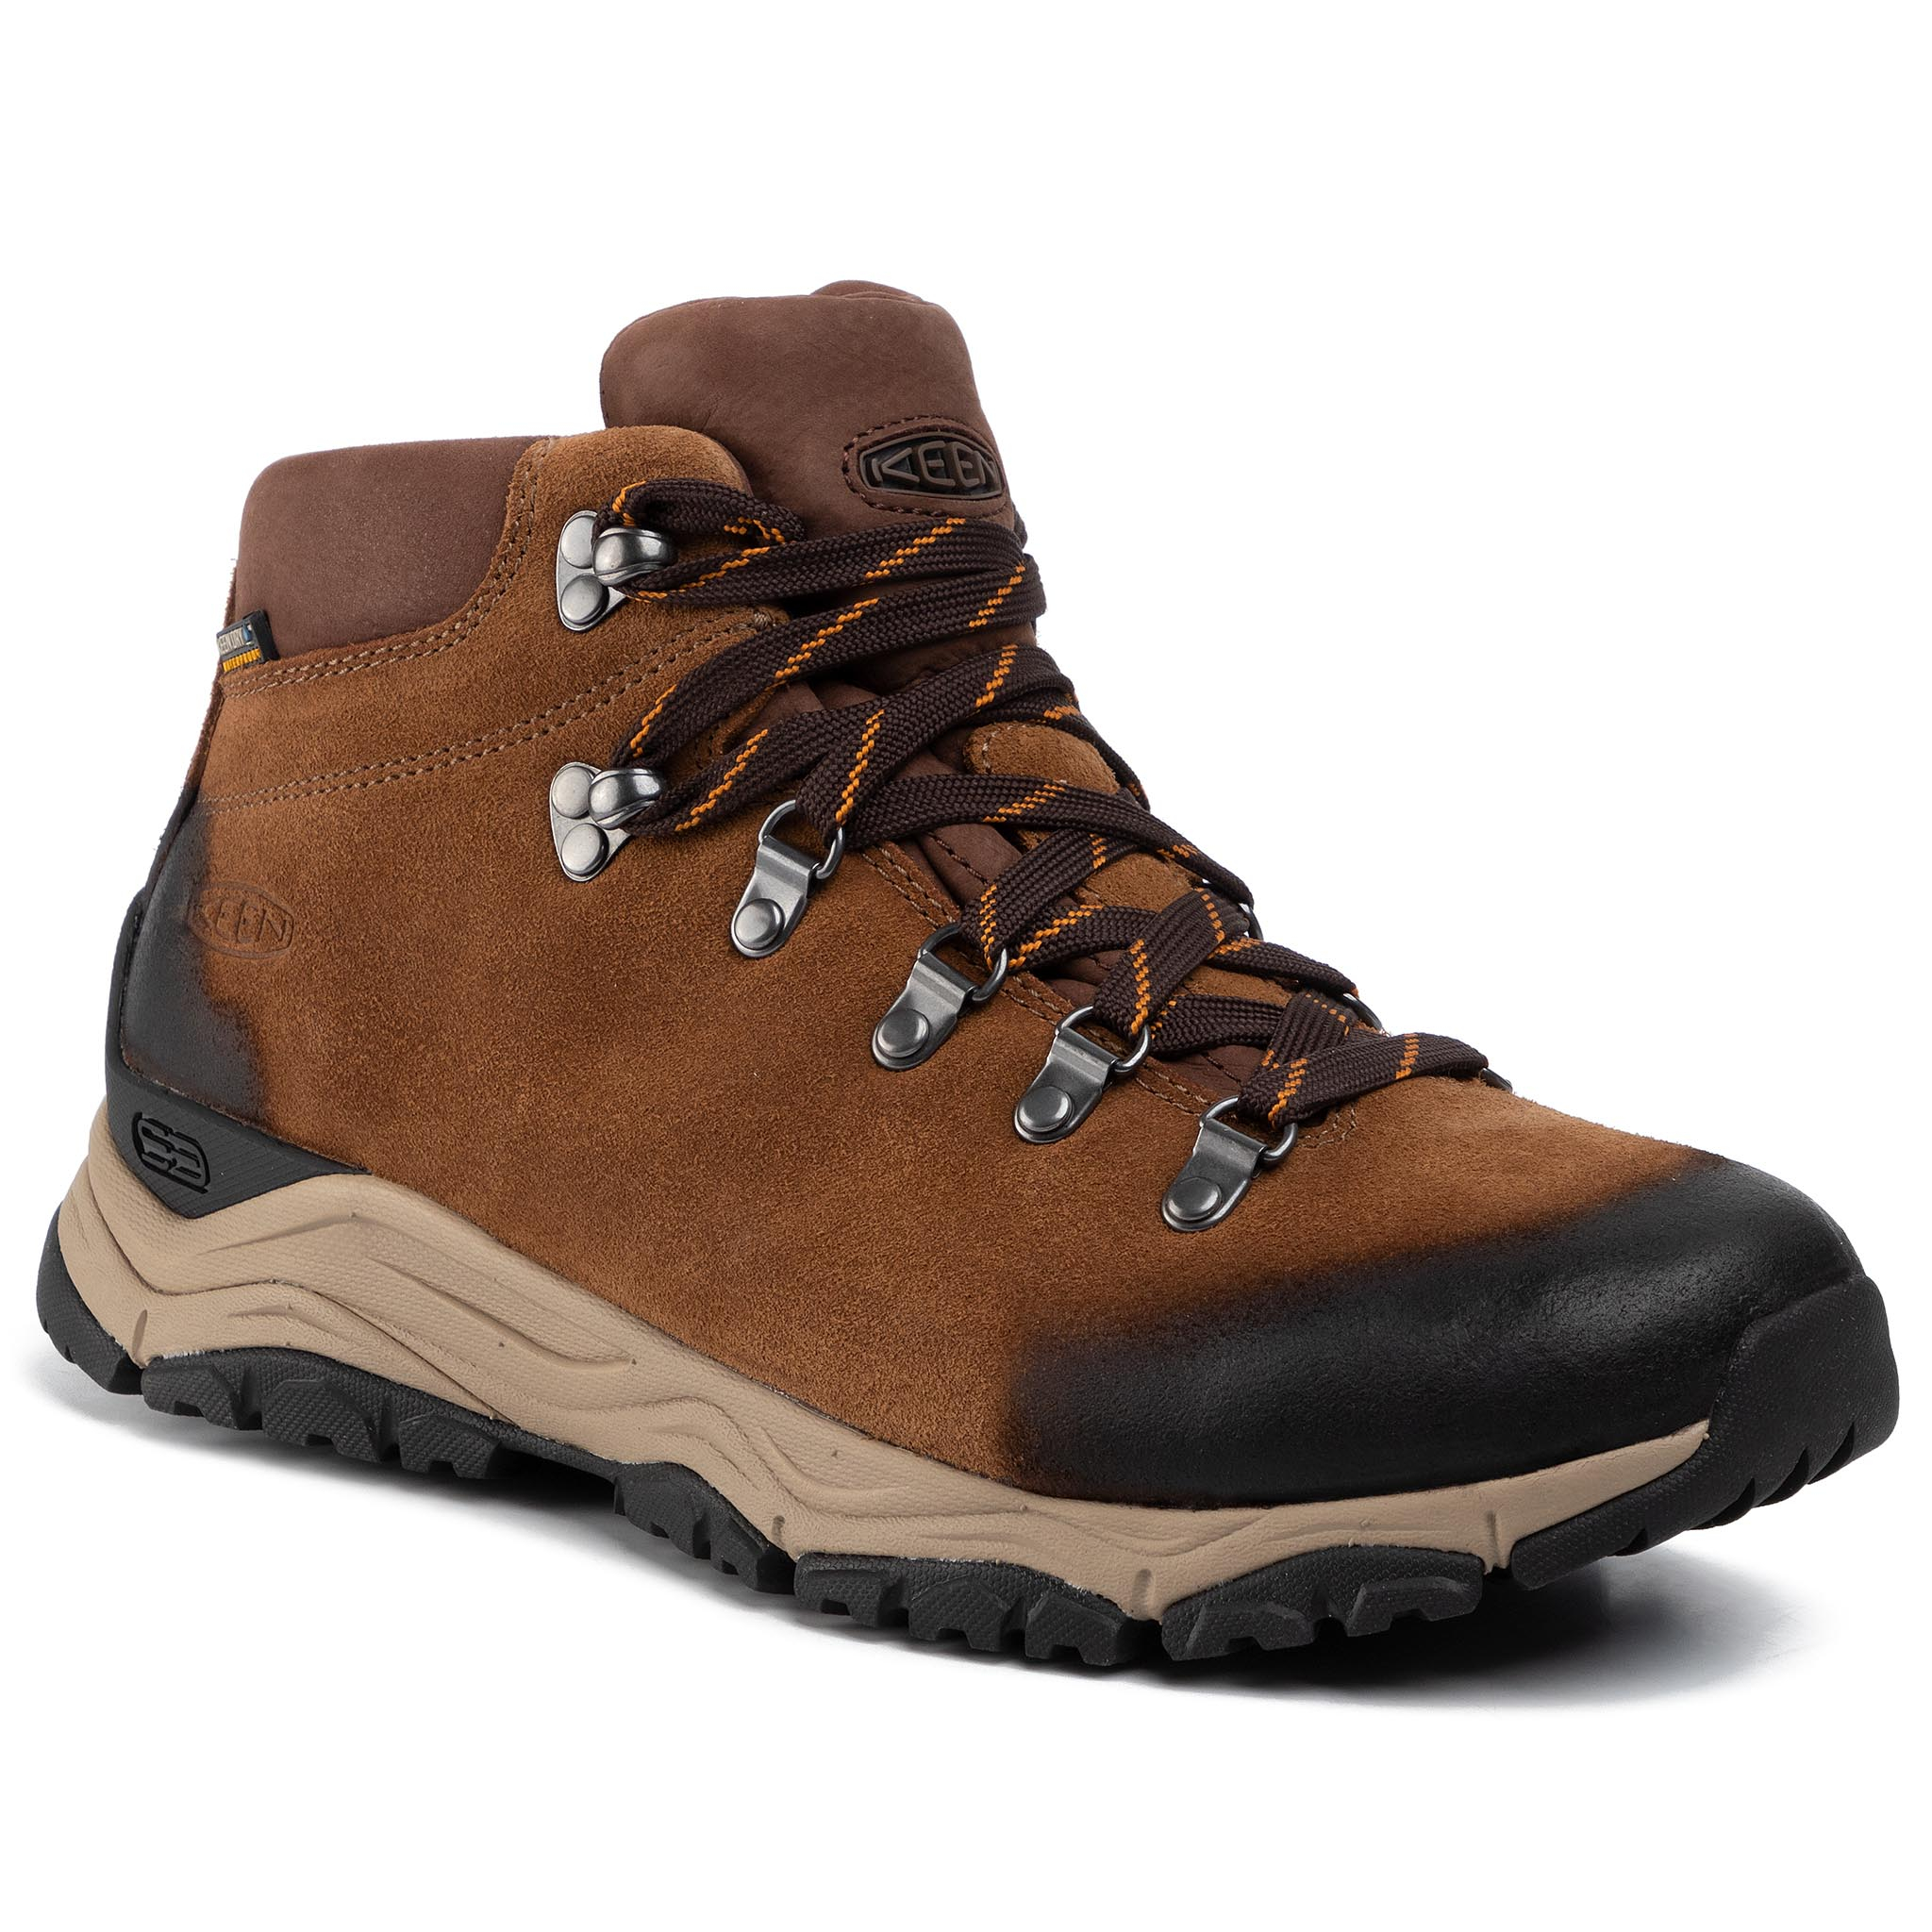 Trekkings Keen - Feldberg Apx Wp 1021599 Cognac imagine epantofi.ro 2021